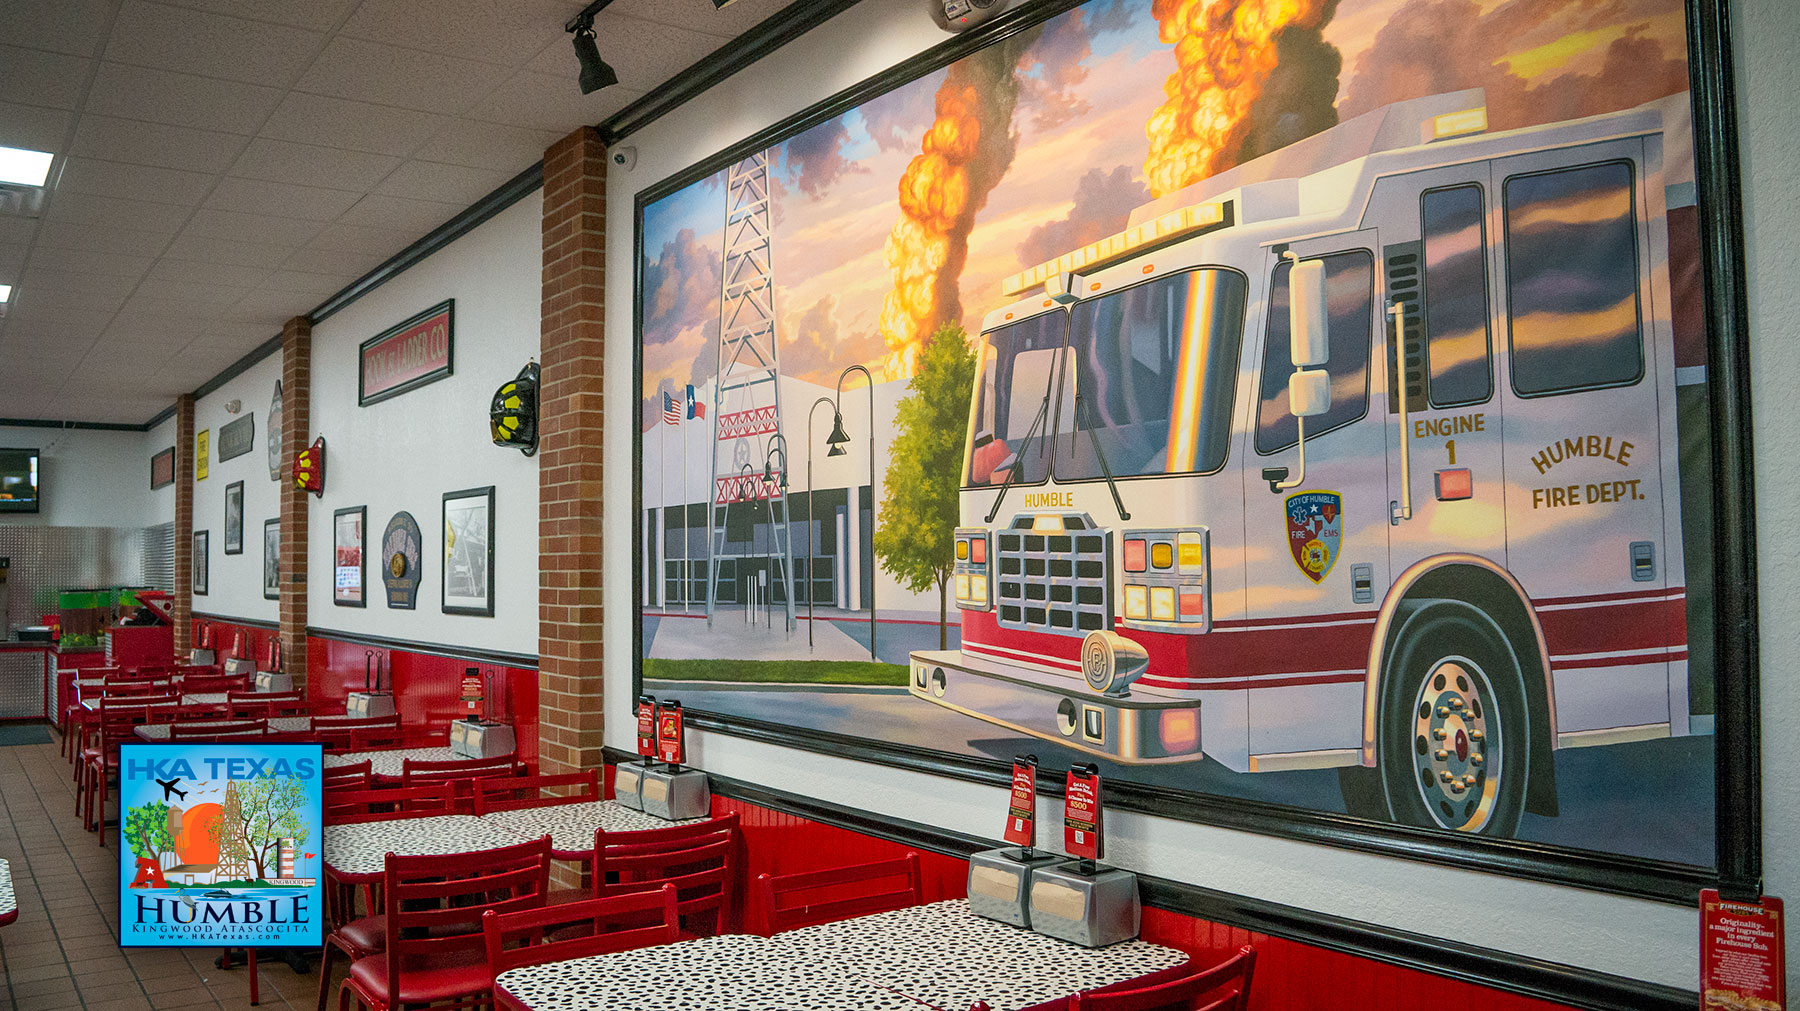 Firehouse subs in Humble is NOW OPEN - Grand Opening event scheduled for July 12th